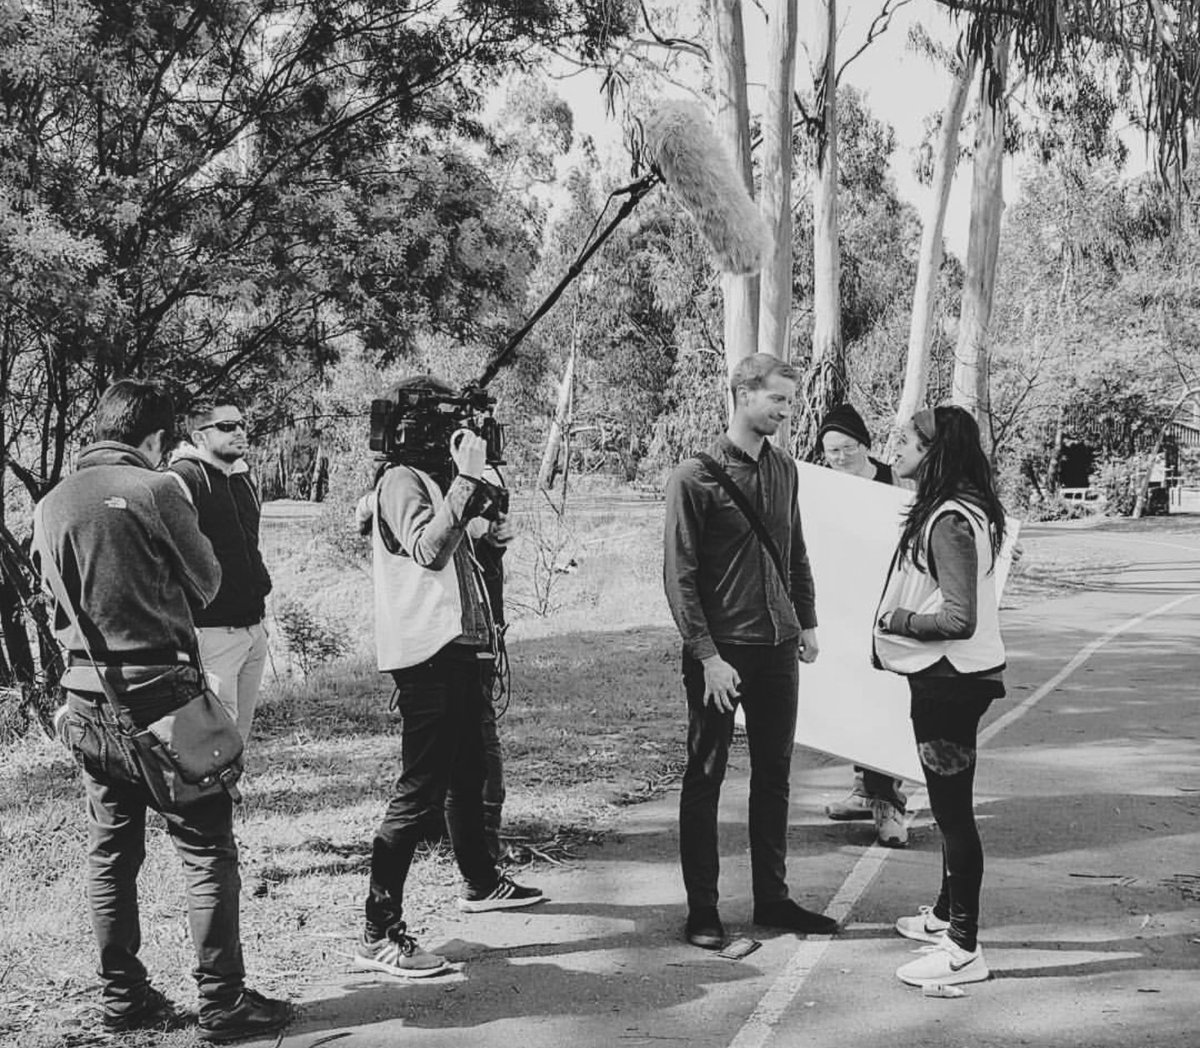 #bts Image from the upcoming &#39;Aperture&#39;. Make sure to follow to keep up to date with trailers &amp; release dates!  #film #melbourne #crew #bcw<br>http://pic.twitter.com/n4WYxos1kx